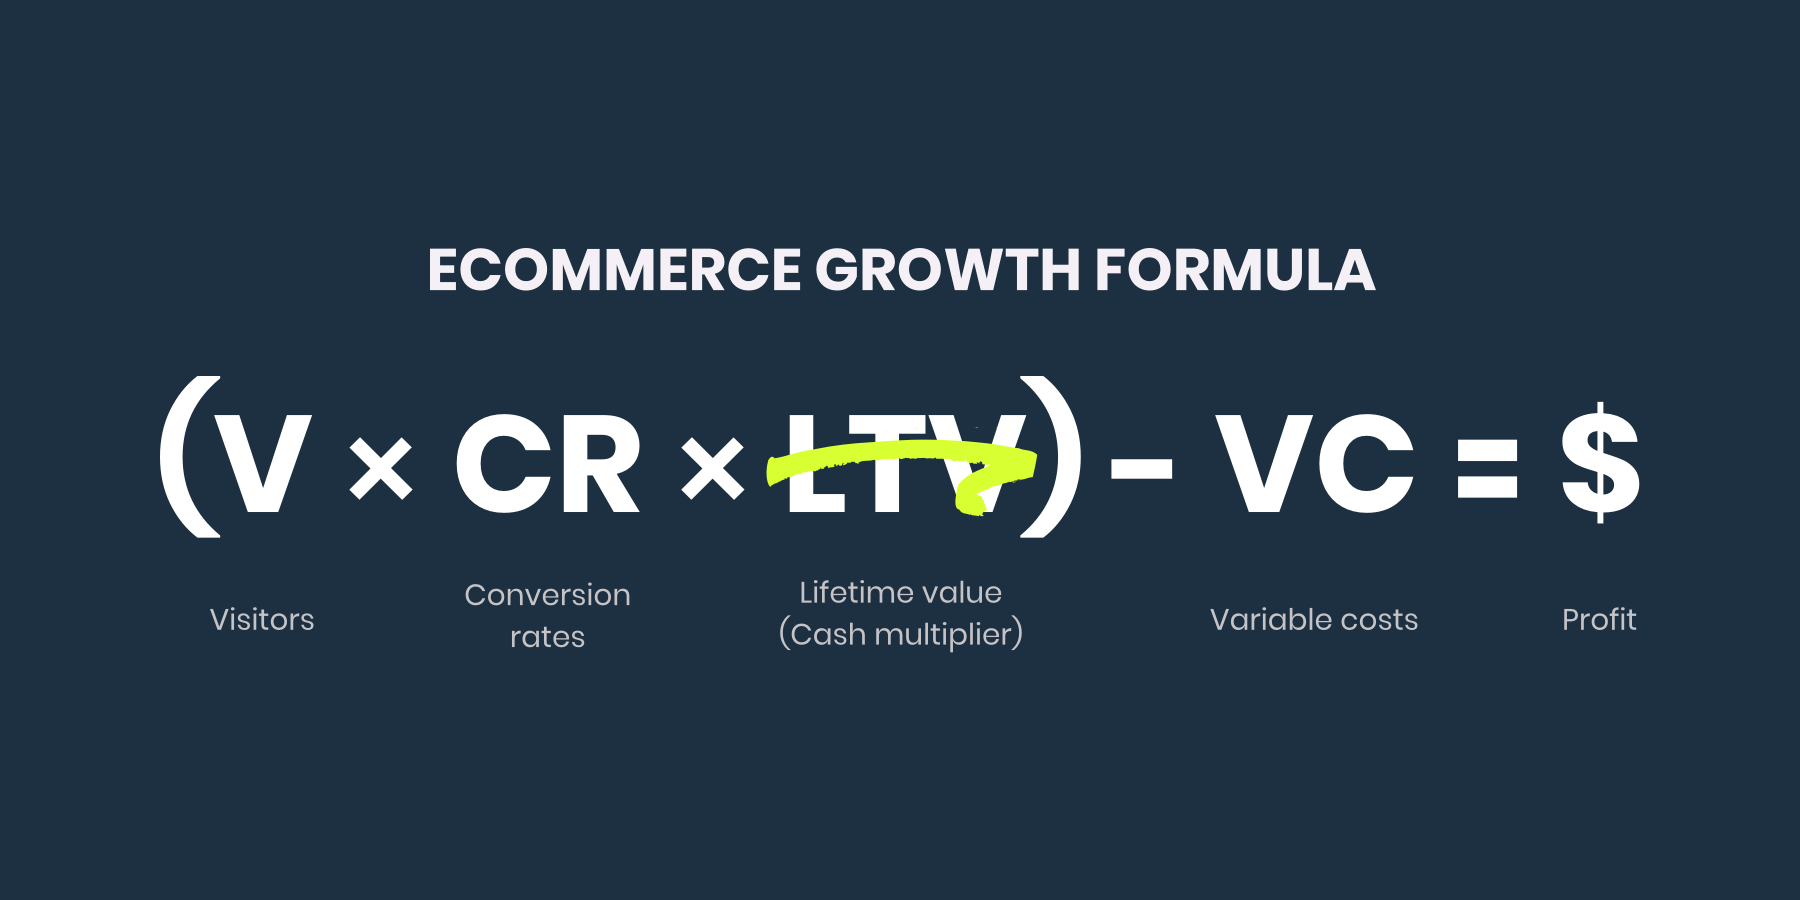 Ecommerce Growth Formula